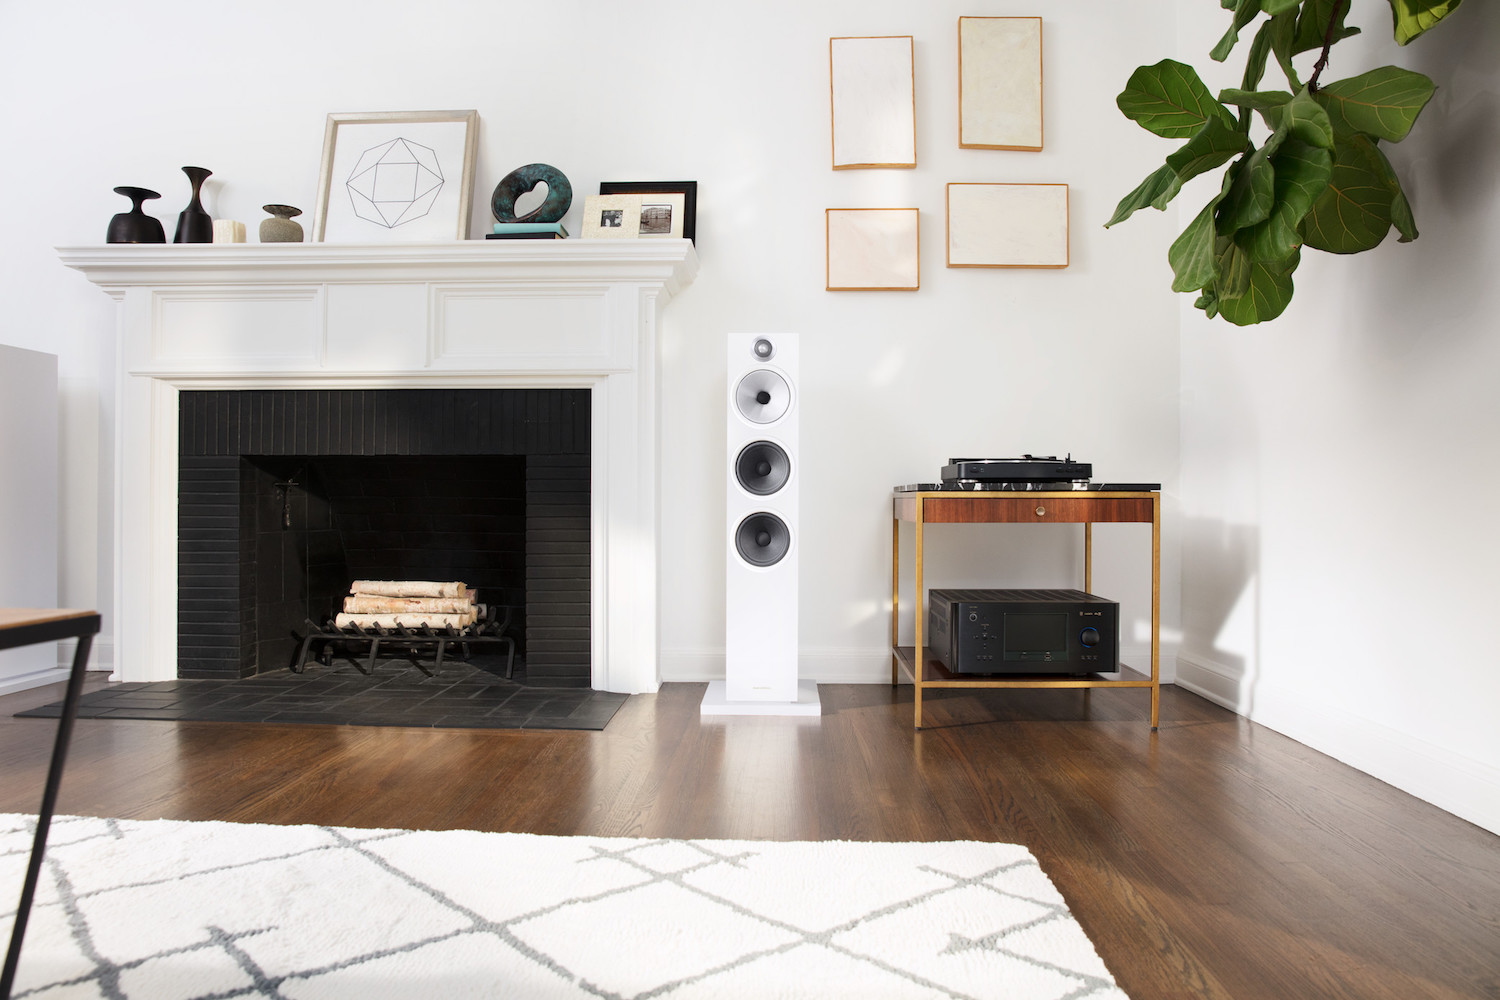 Review: Bowers & Wilkins 603 S2 Anniversary Edition